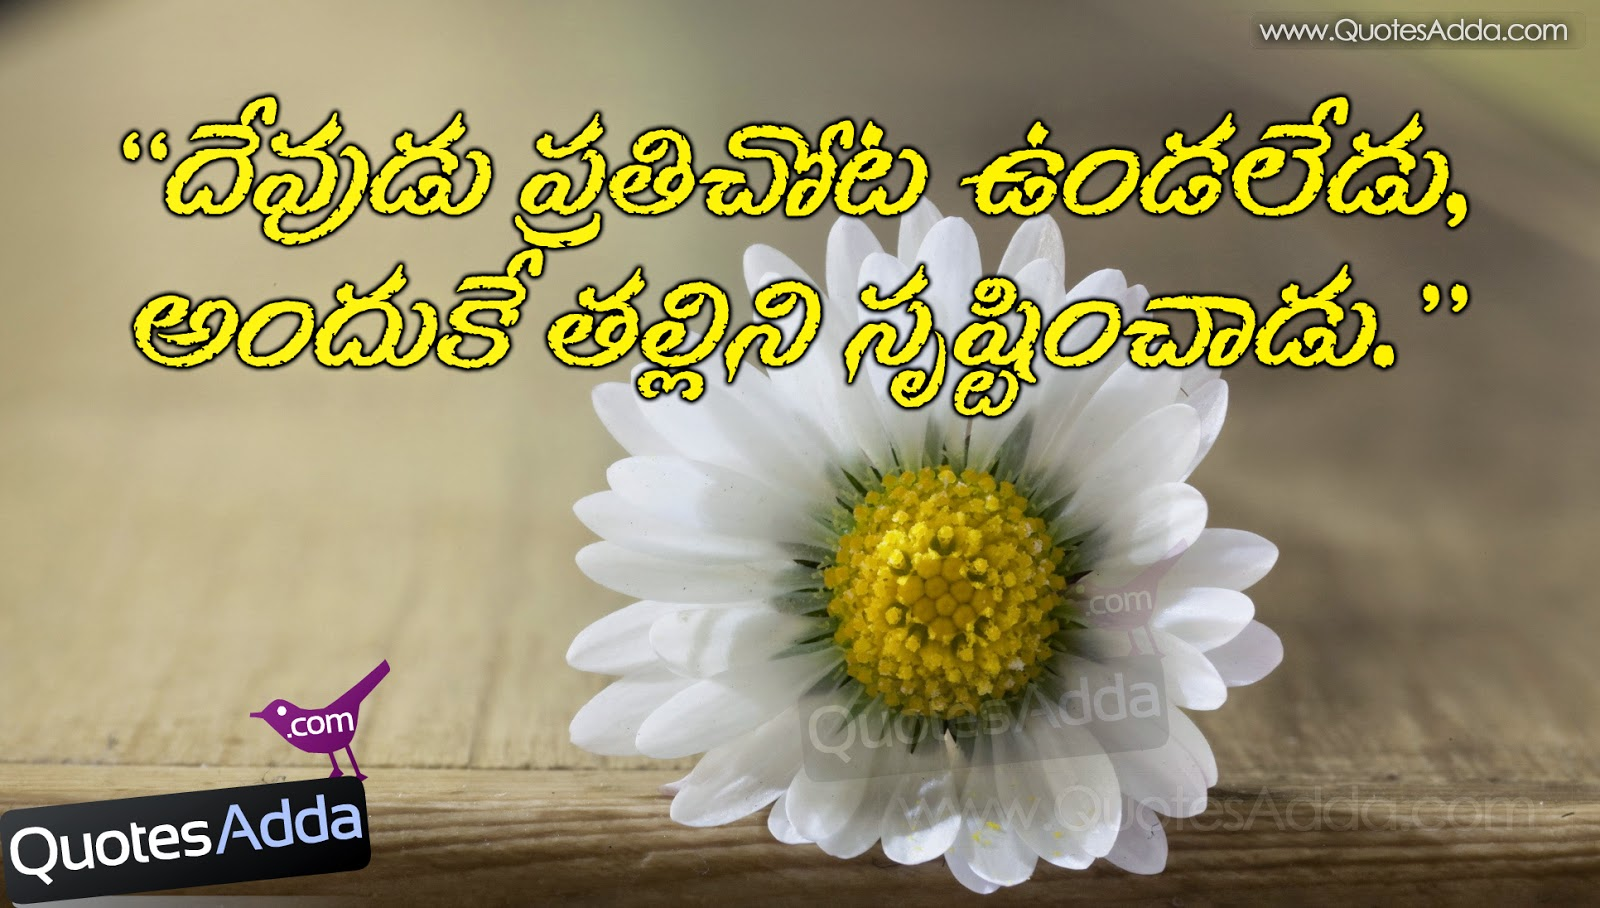 nanna quotes in telugu-#36